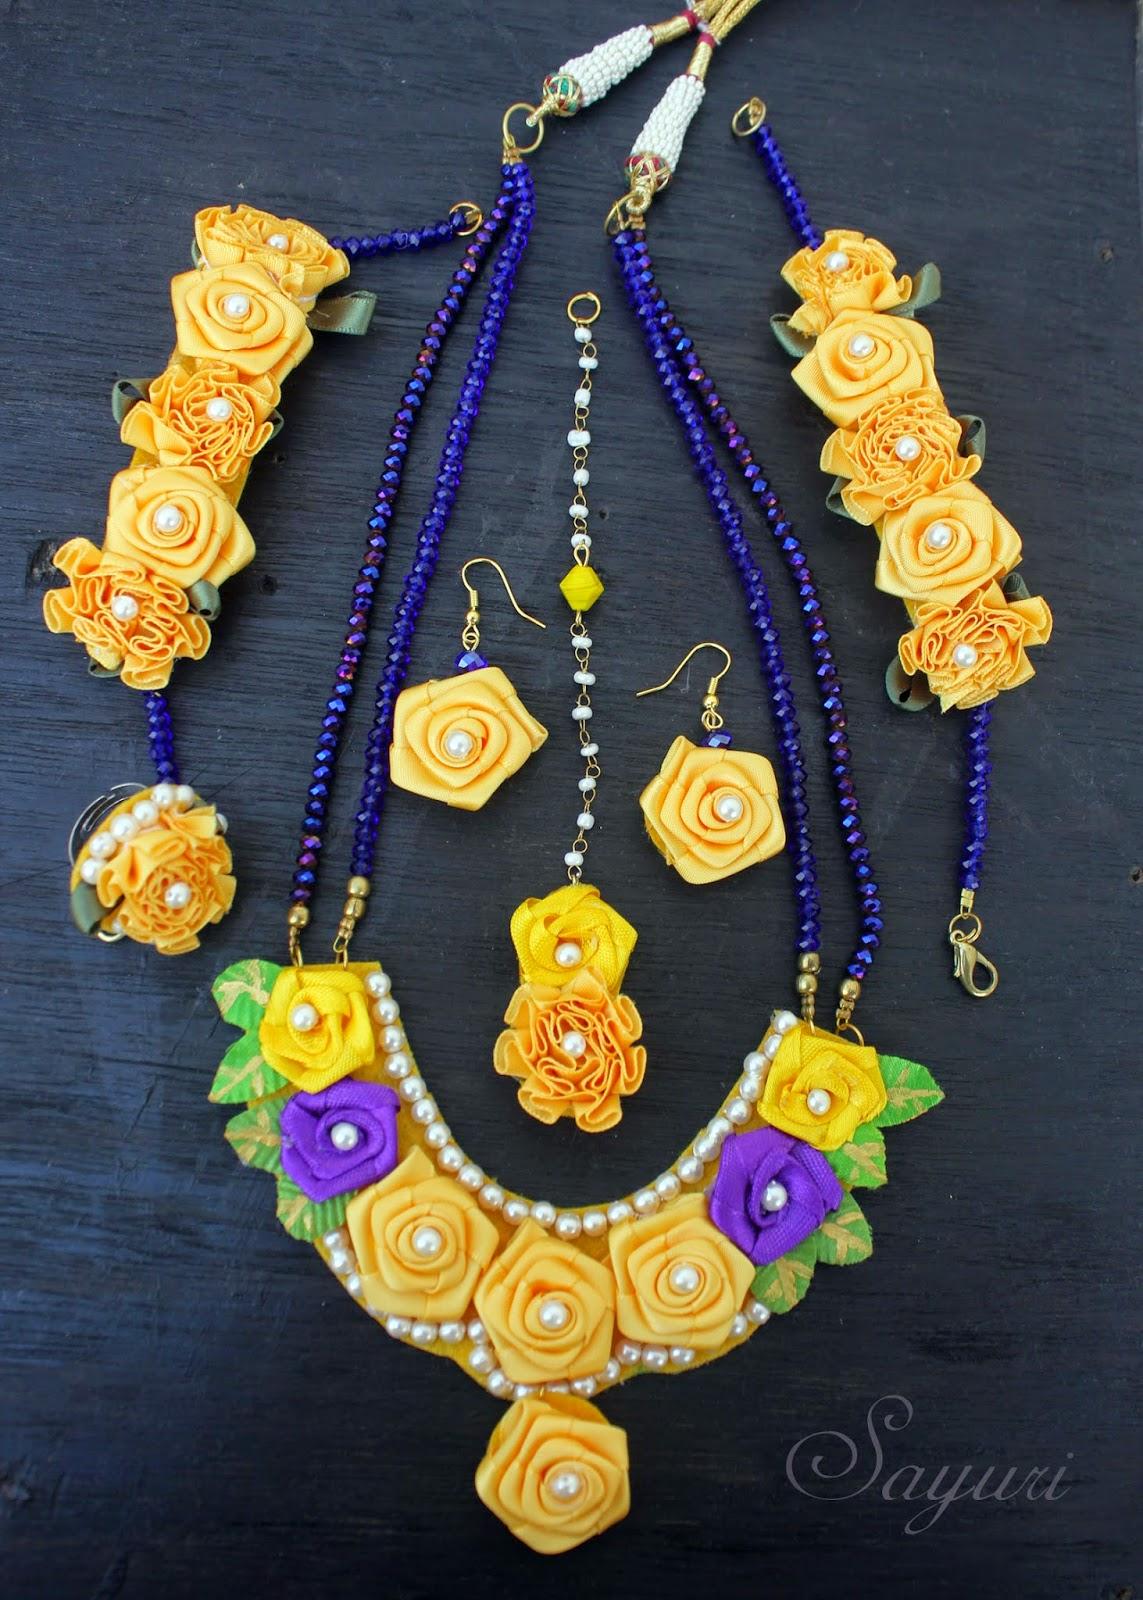 Ribbon flower jewelry for Haldi function